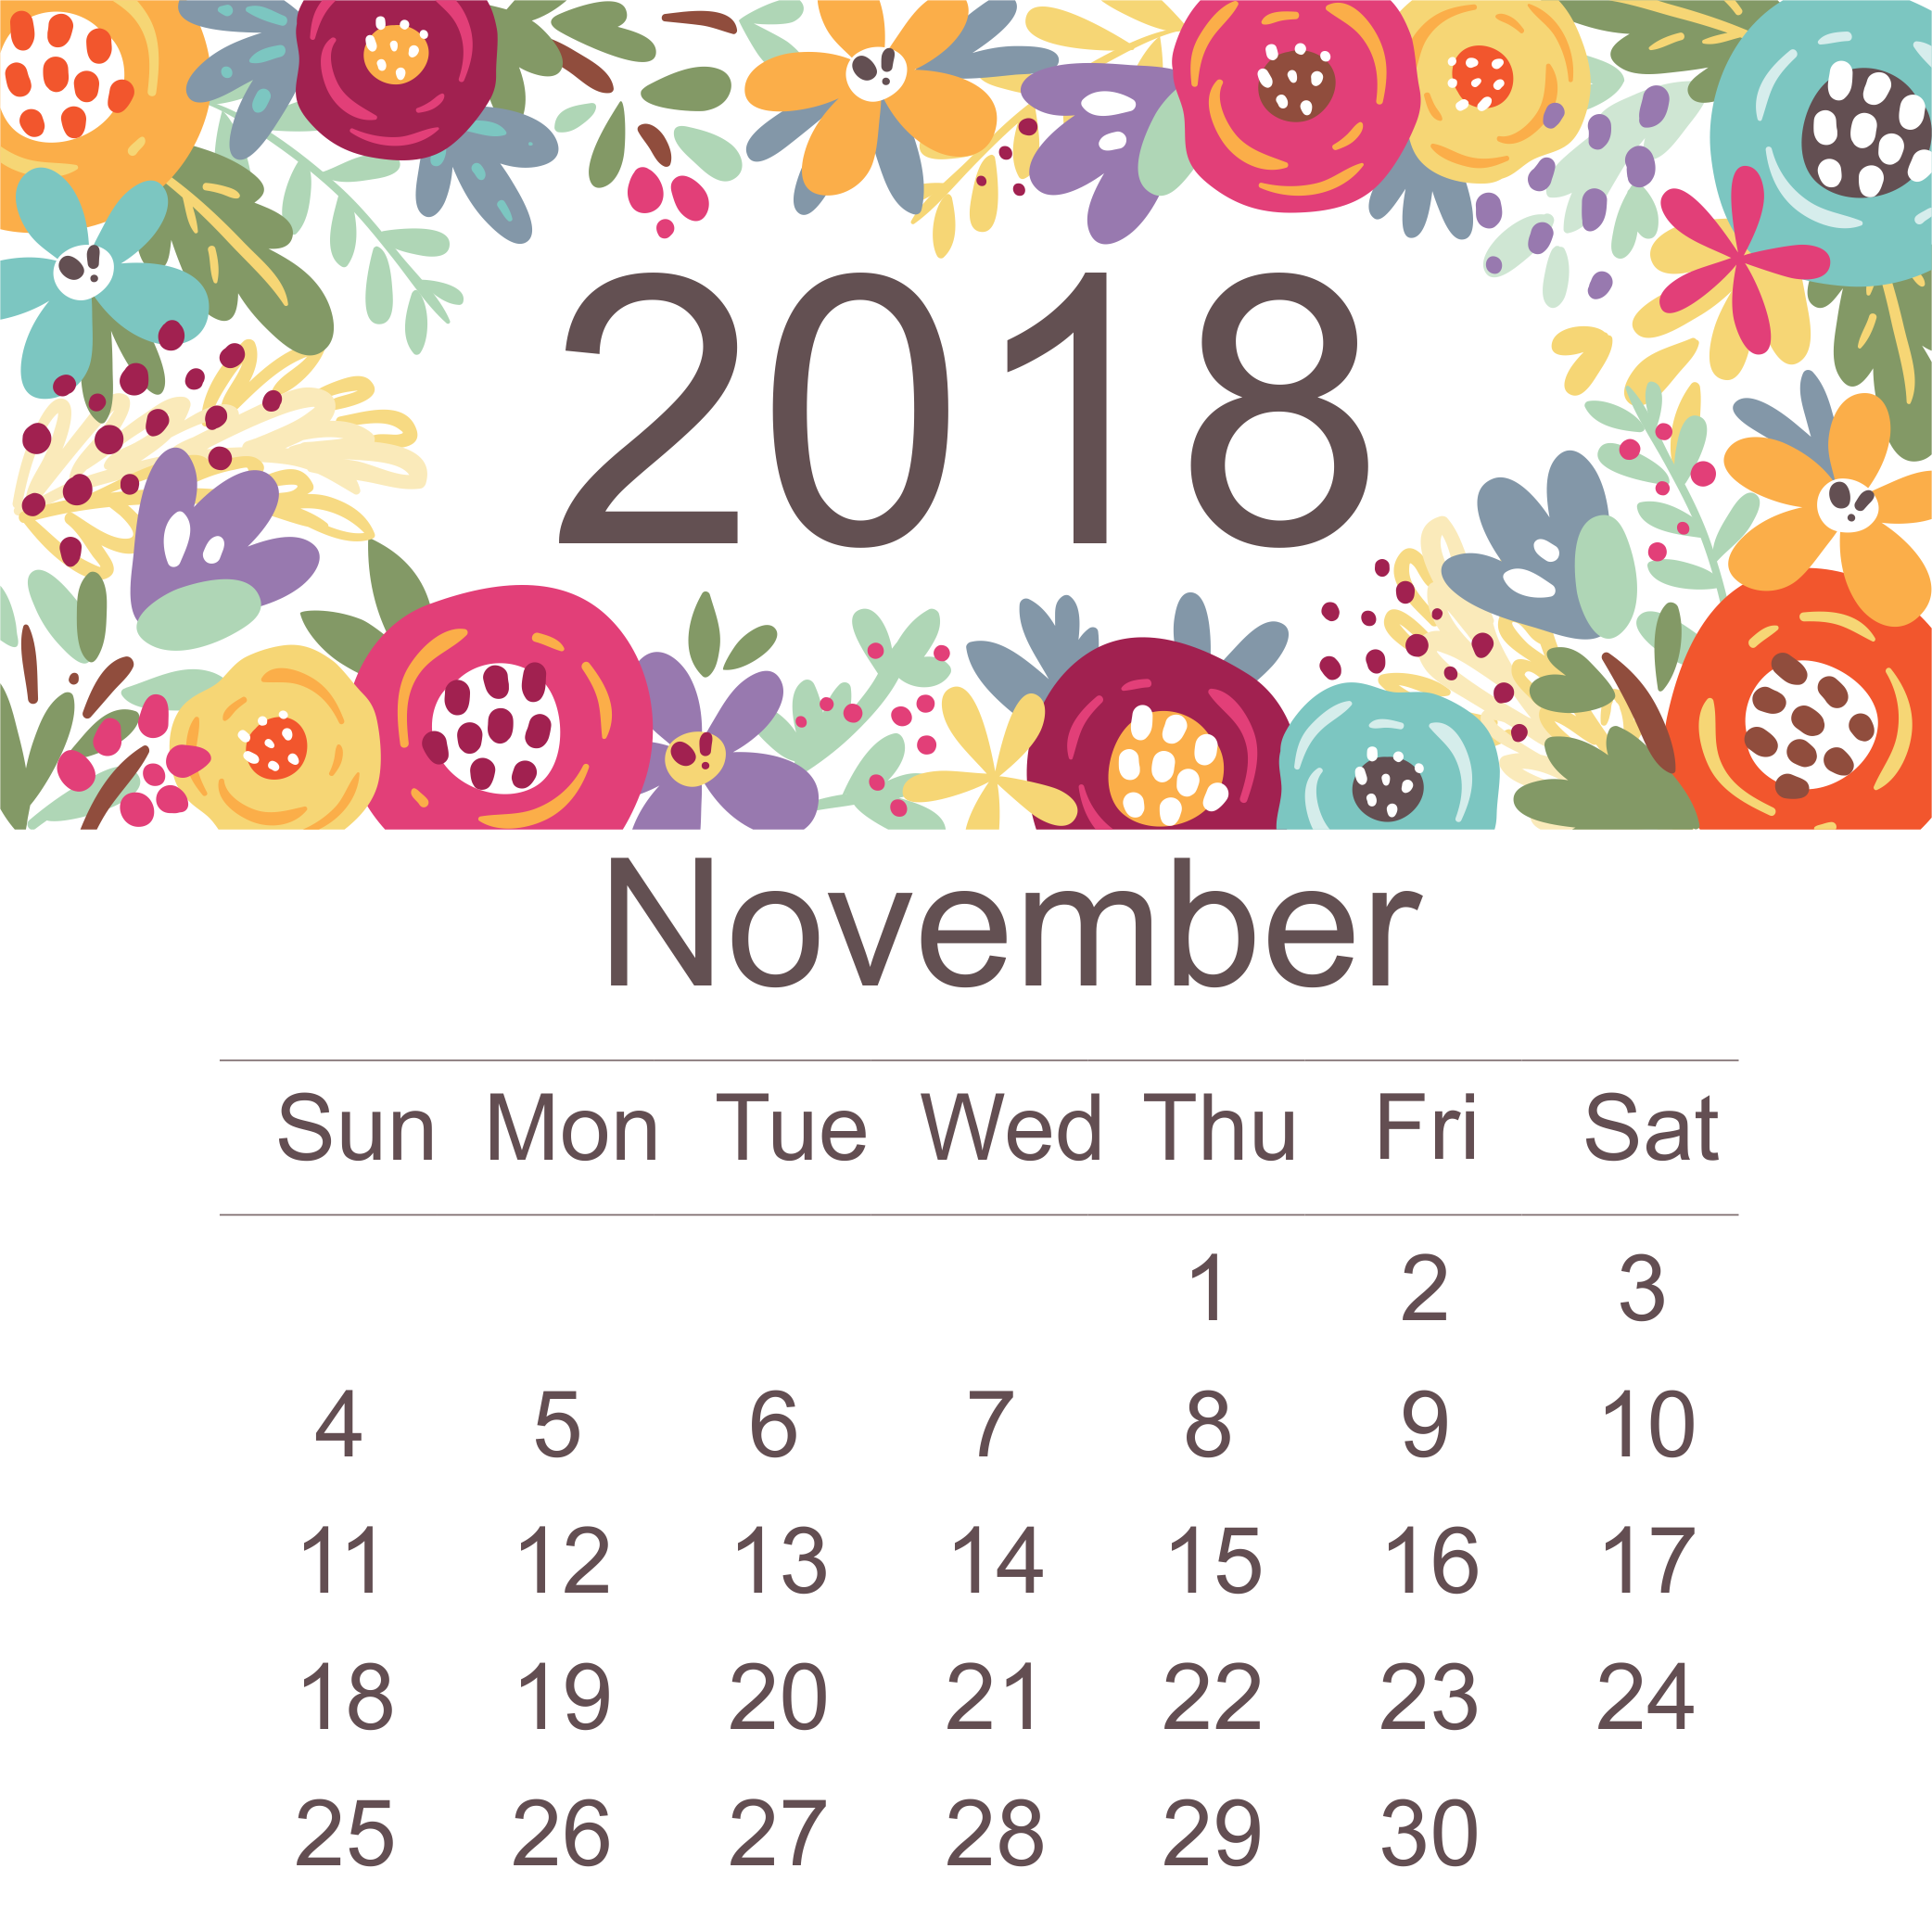 Printable Calendar November 2018 for Desktop